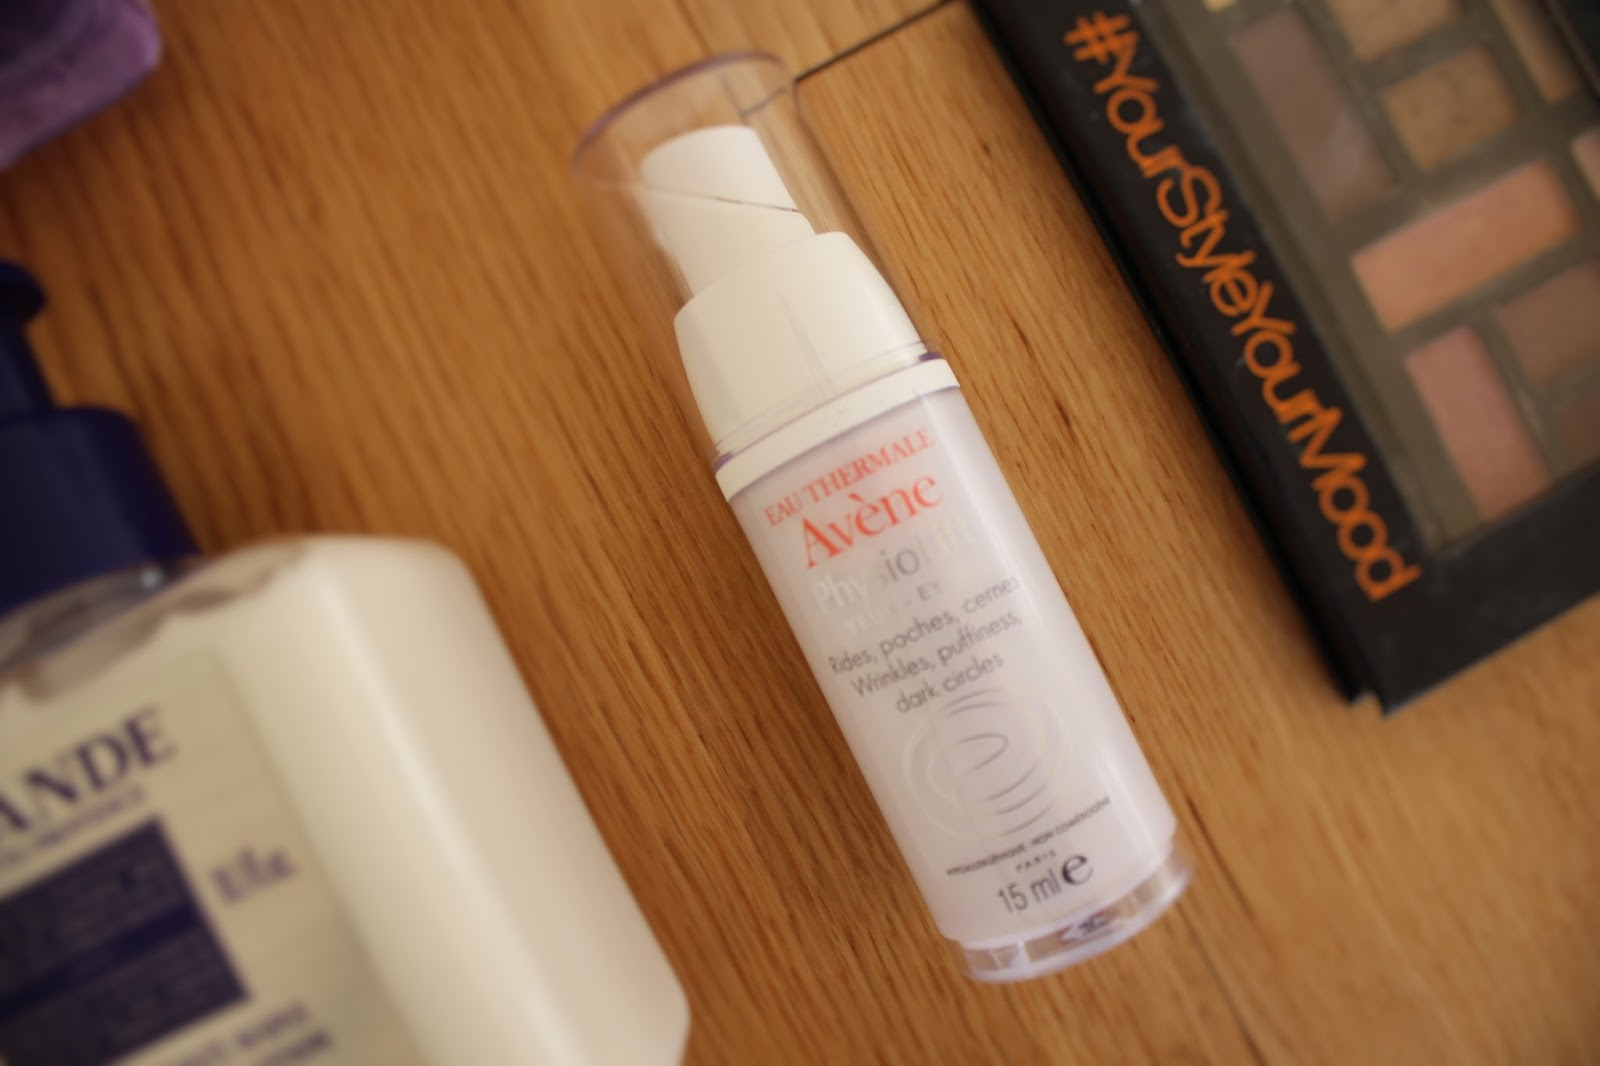 February Favourites - Avene PhysioLift Eye Cream